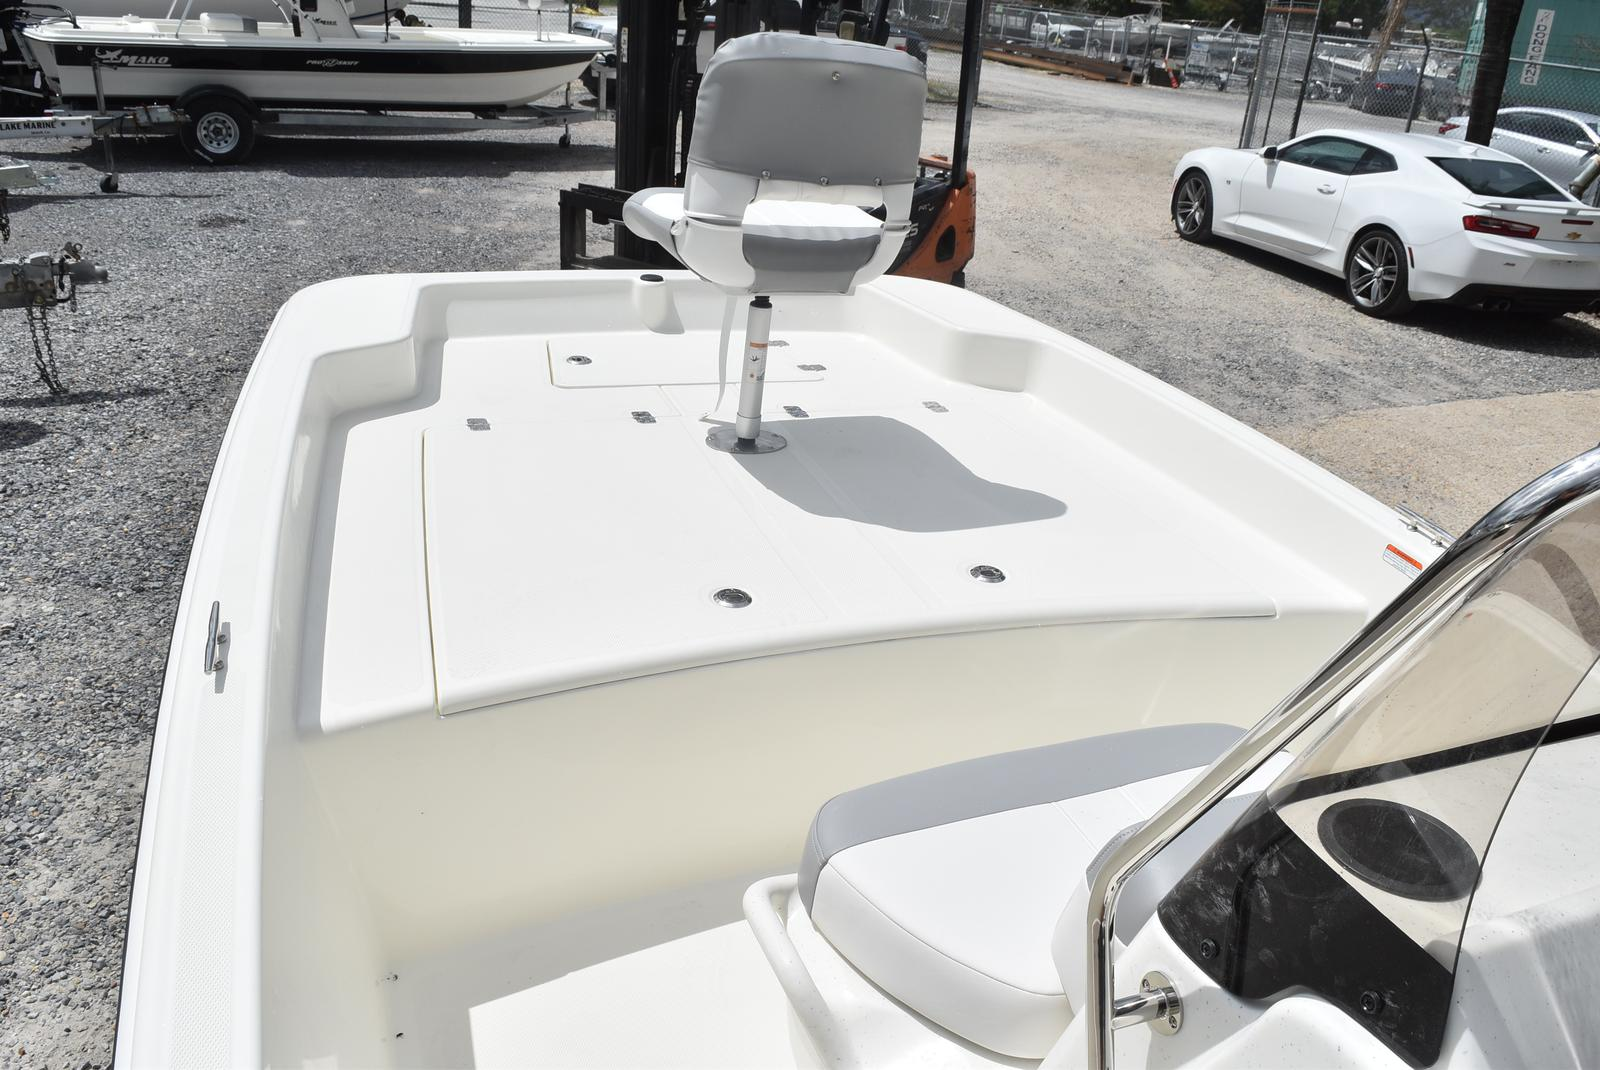 2020 Mako boat for sale, model of the boat is Pro Skiff 17, 75 ELPT & Image # 437 of 702